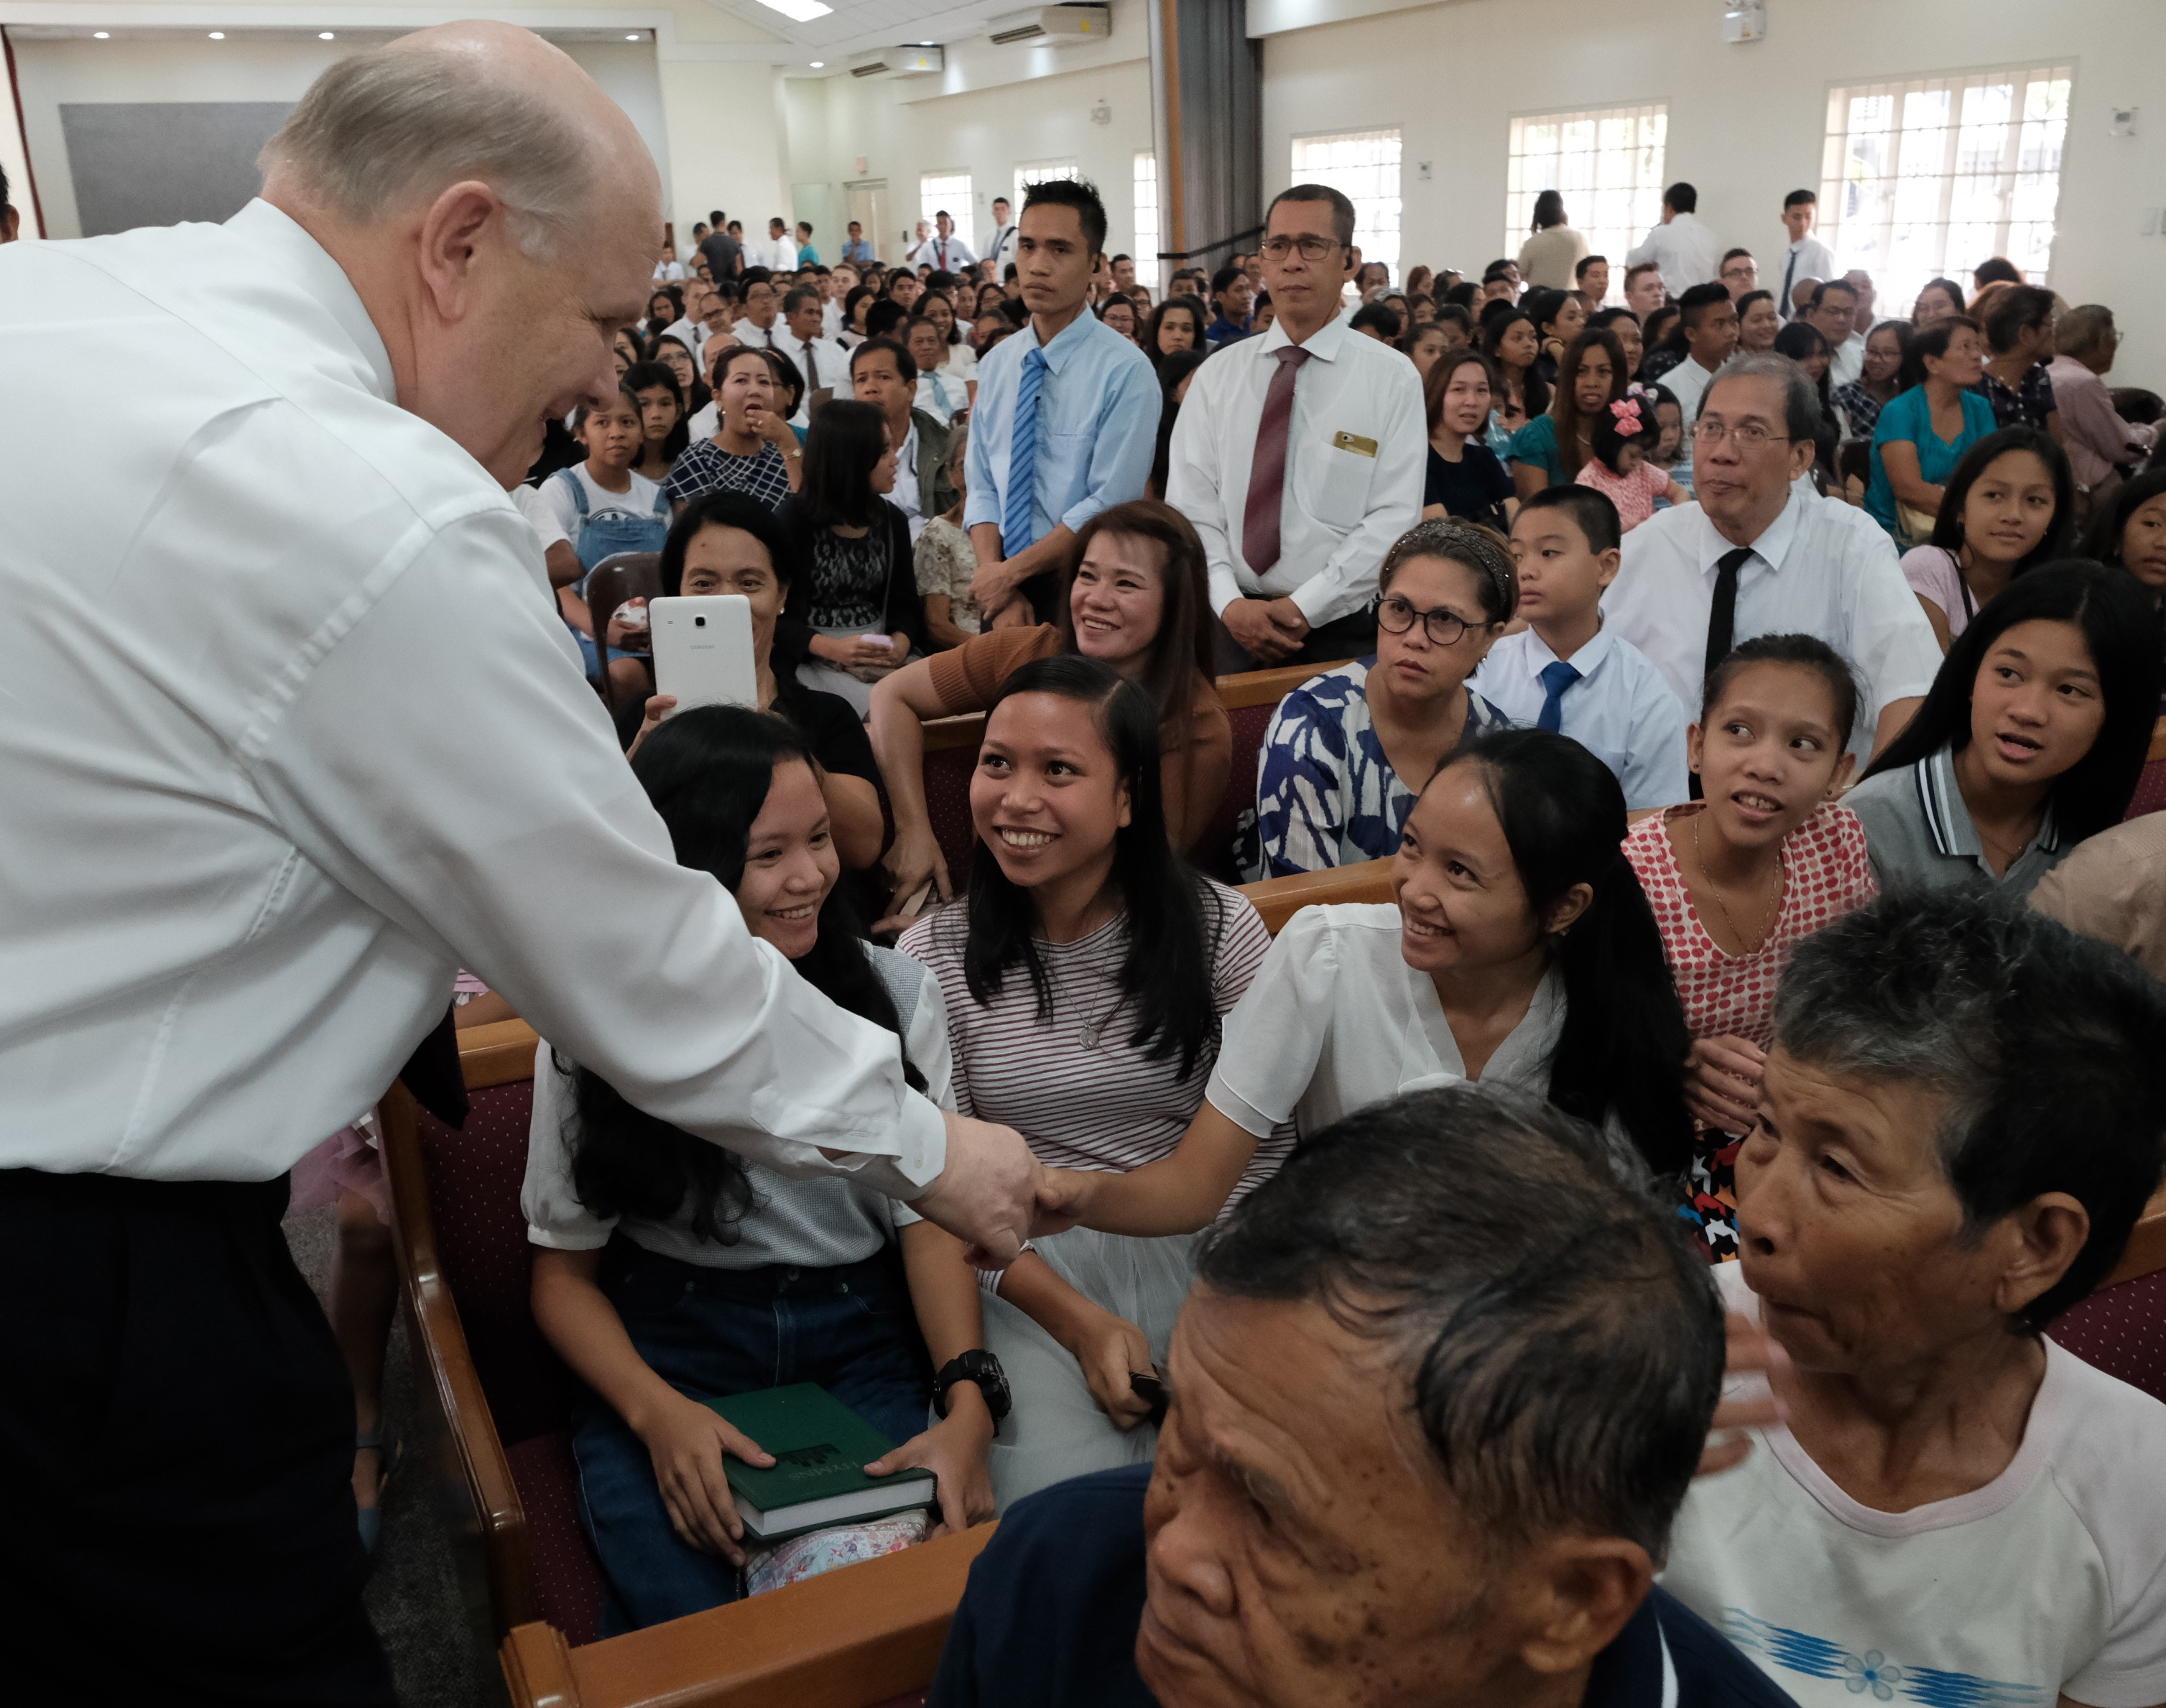 Elder Renlund greets members in Bacolod following a devotional in Bacolod, Philippines, during a recent visit to the island nation.